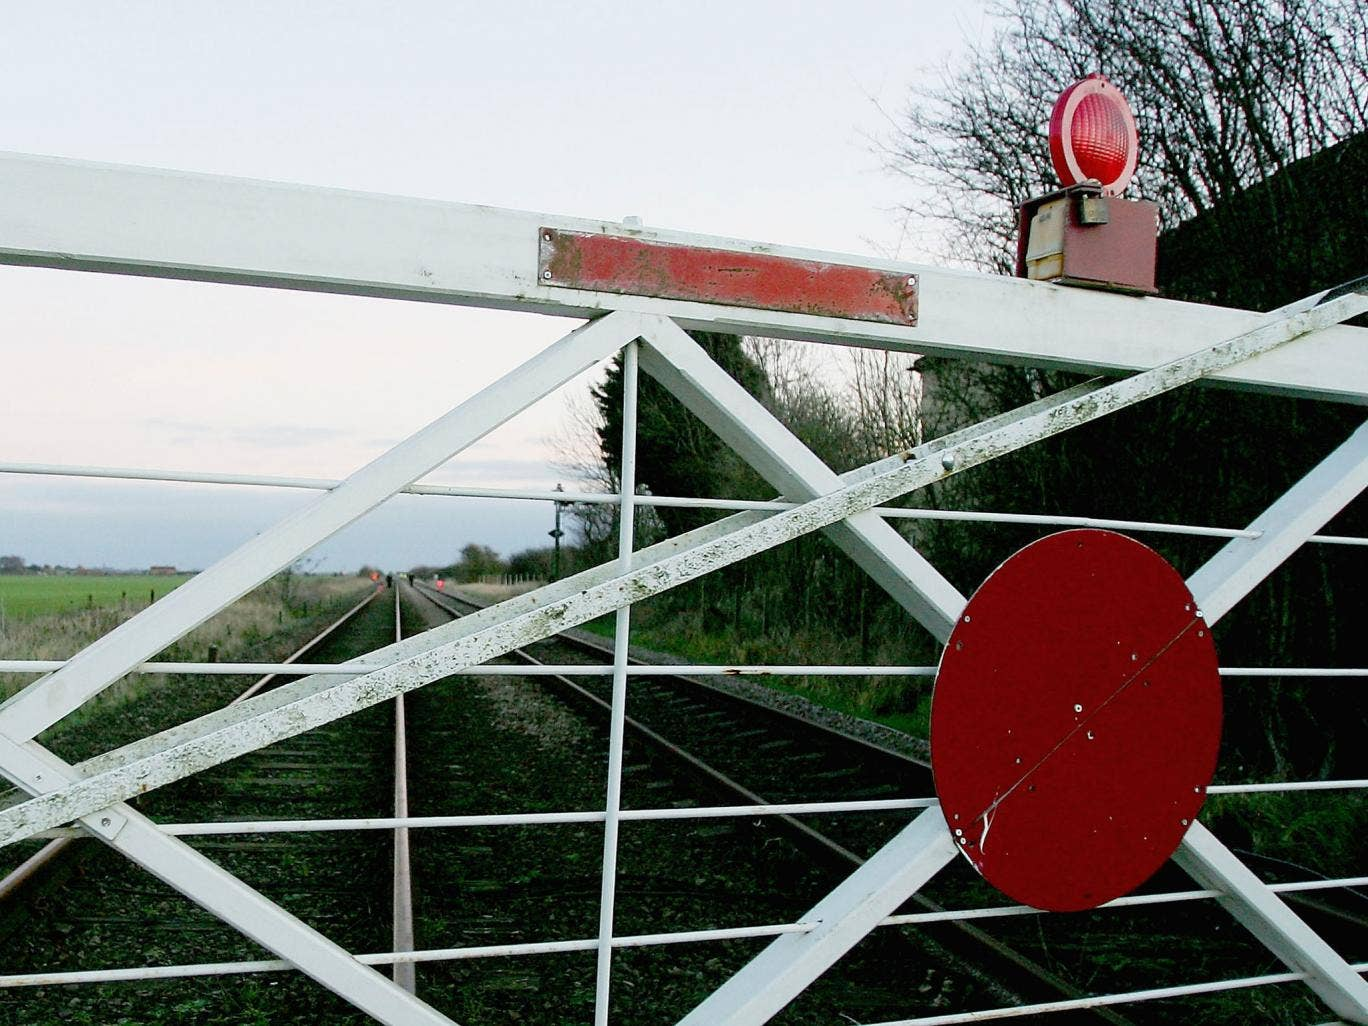 Network Rail said it had closed almost 800 level crossings since 2010